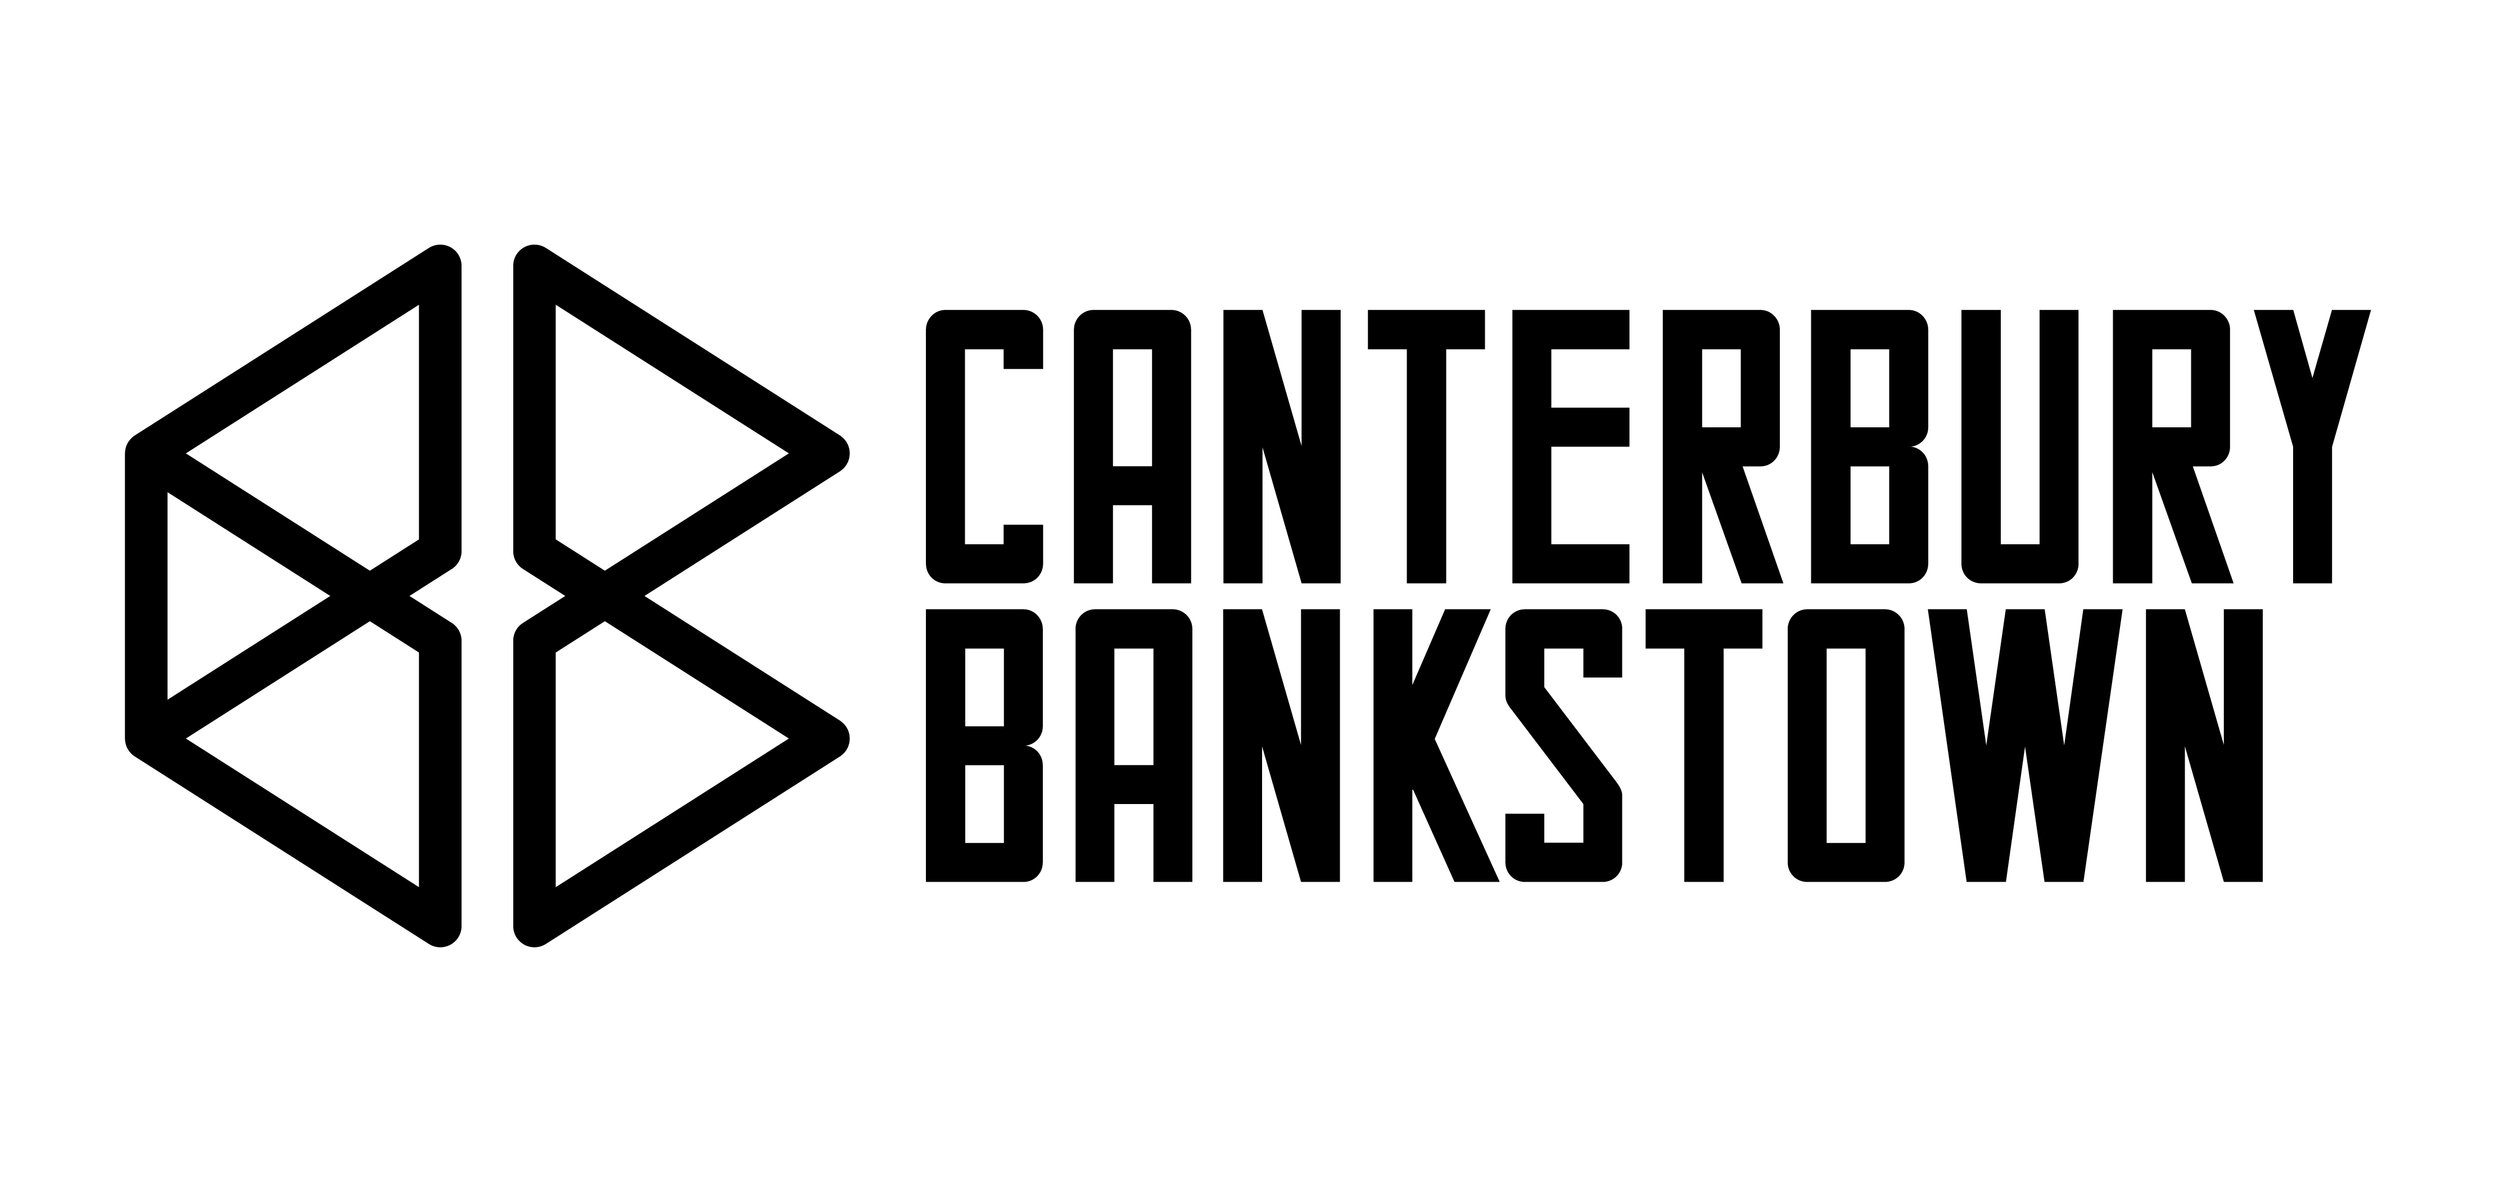 CBC_CanterburyBankstown_Primary_CMYK_Black_highres.jpg